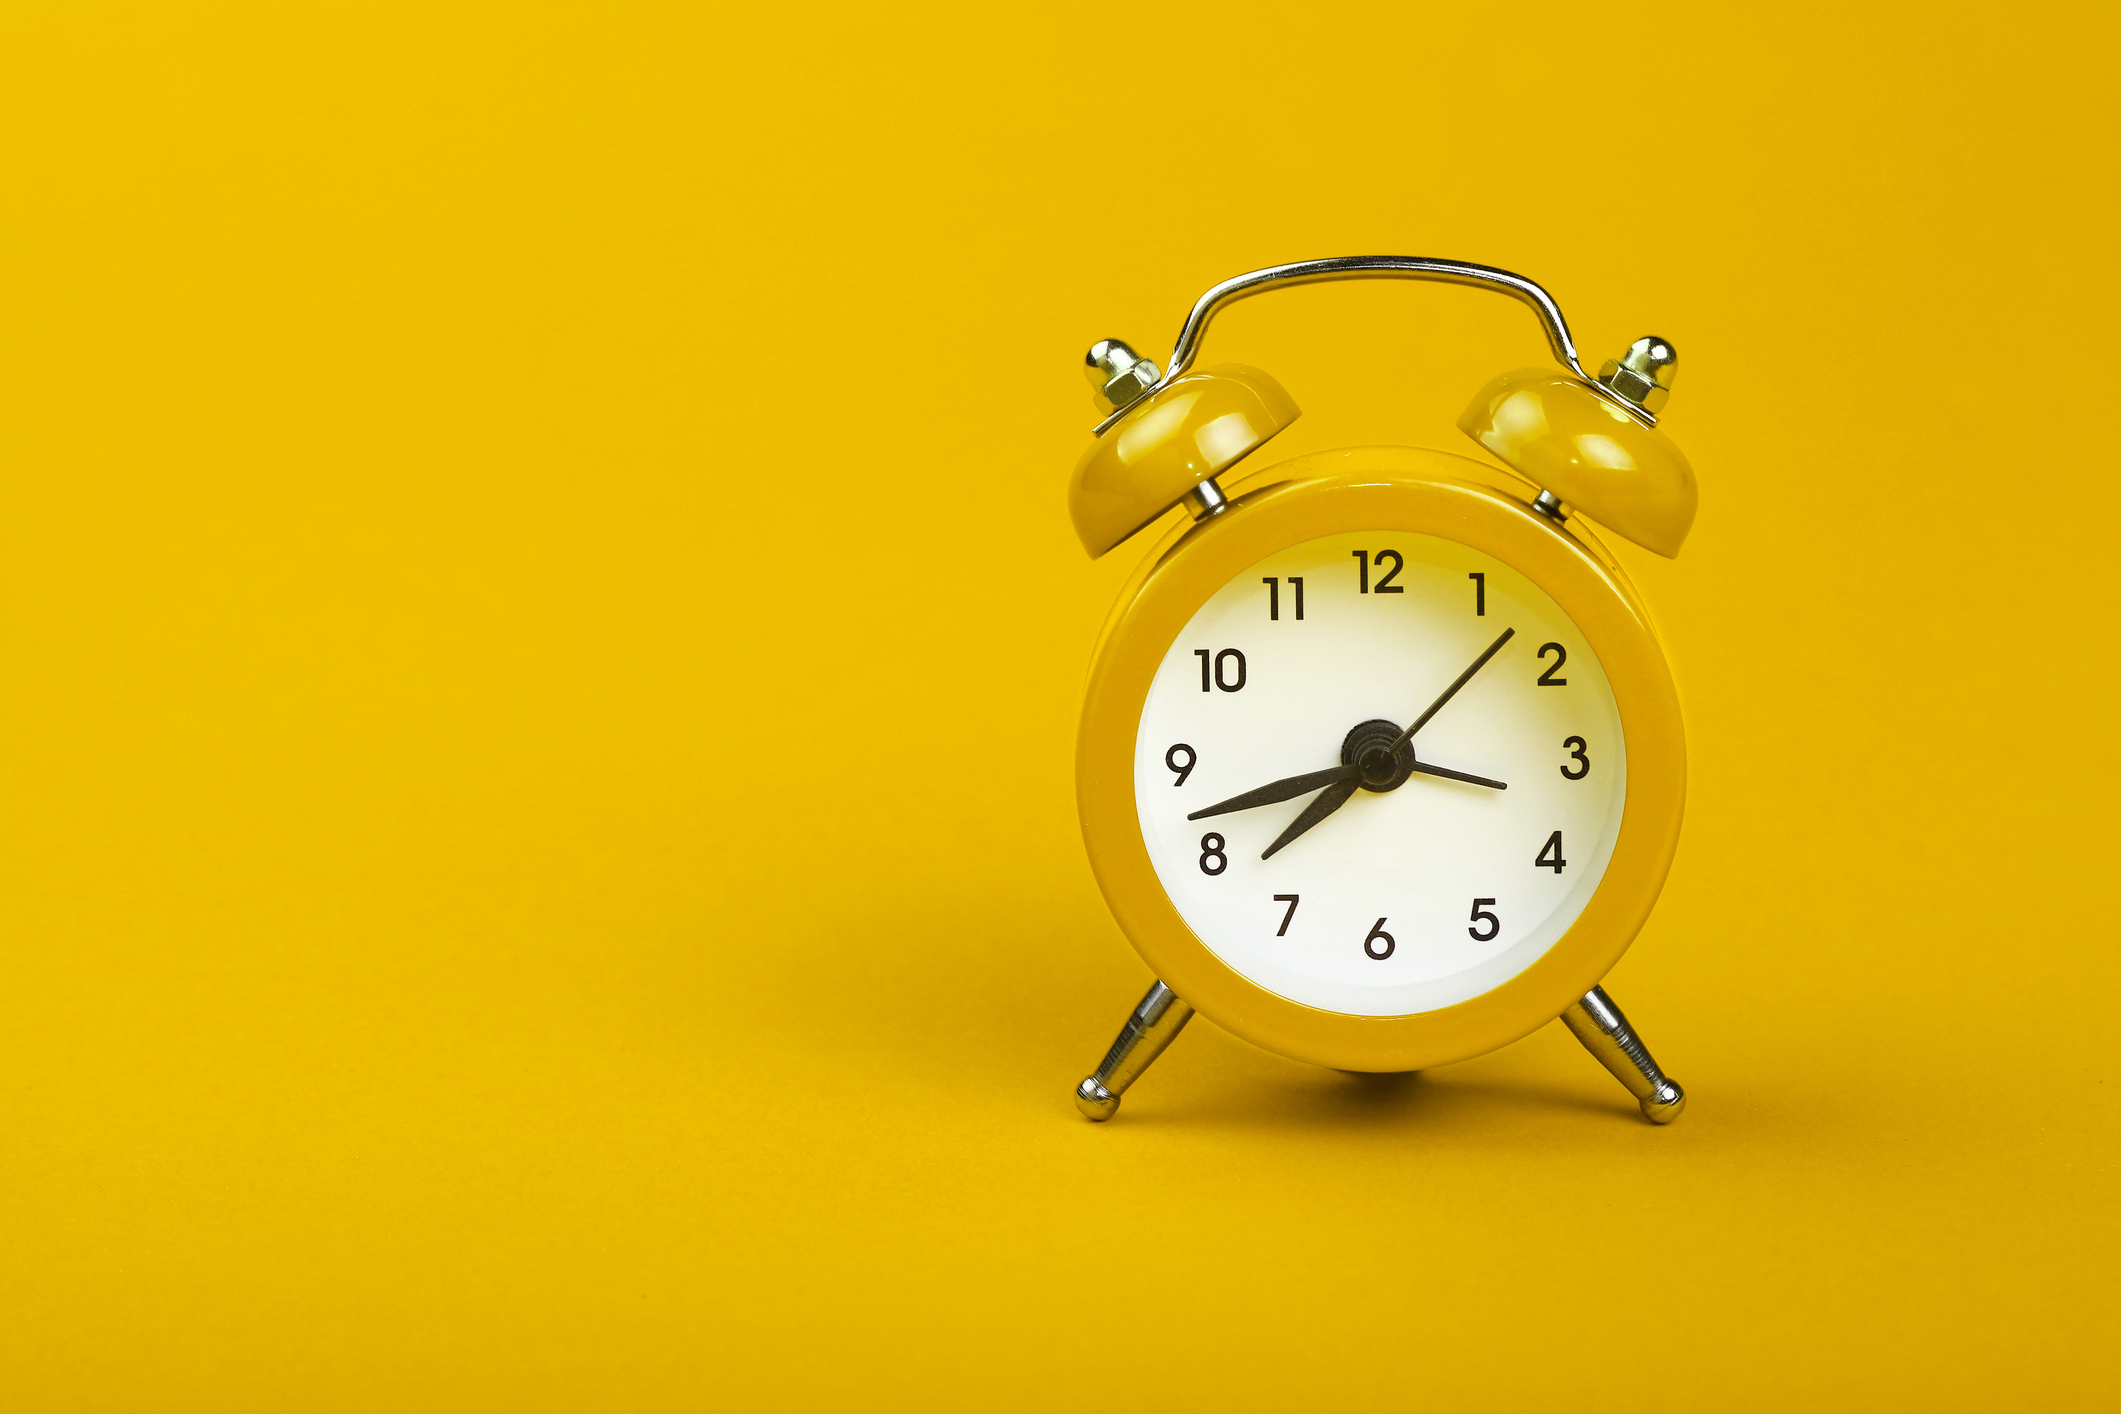 What time do the clocks change on Sunday morning and do we lose an hour or gain an hour?